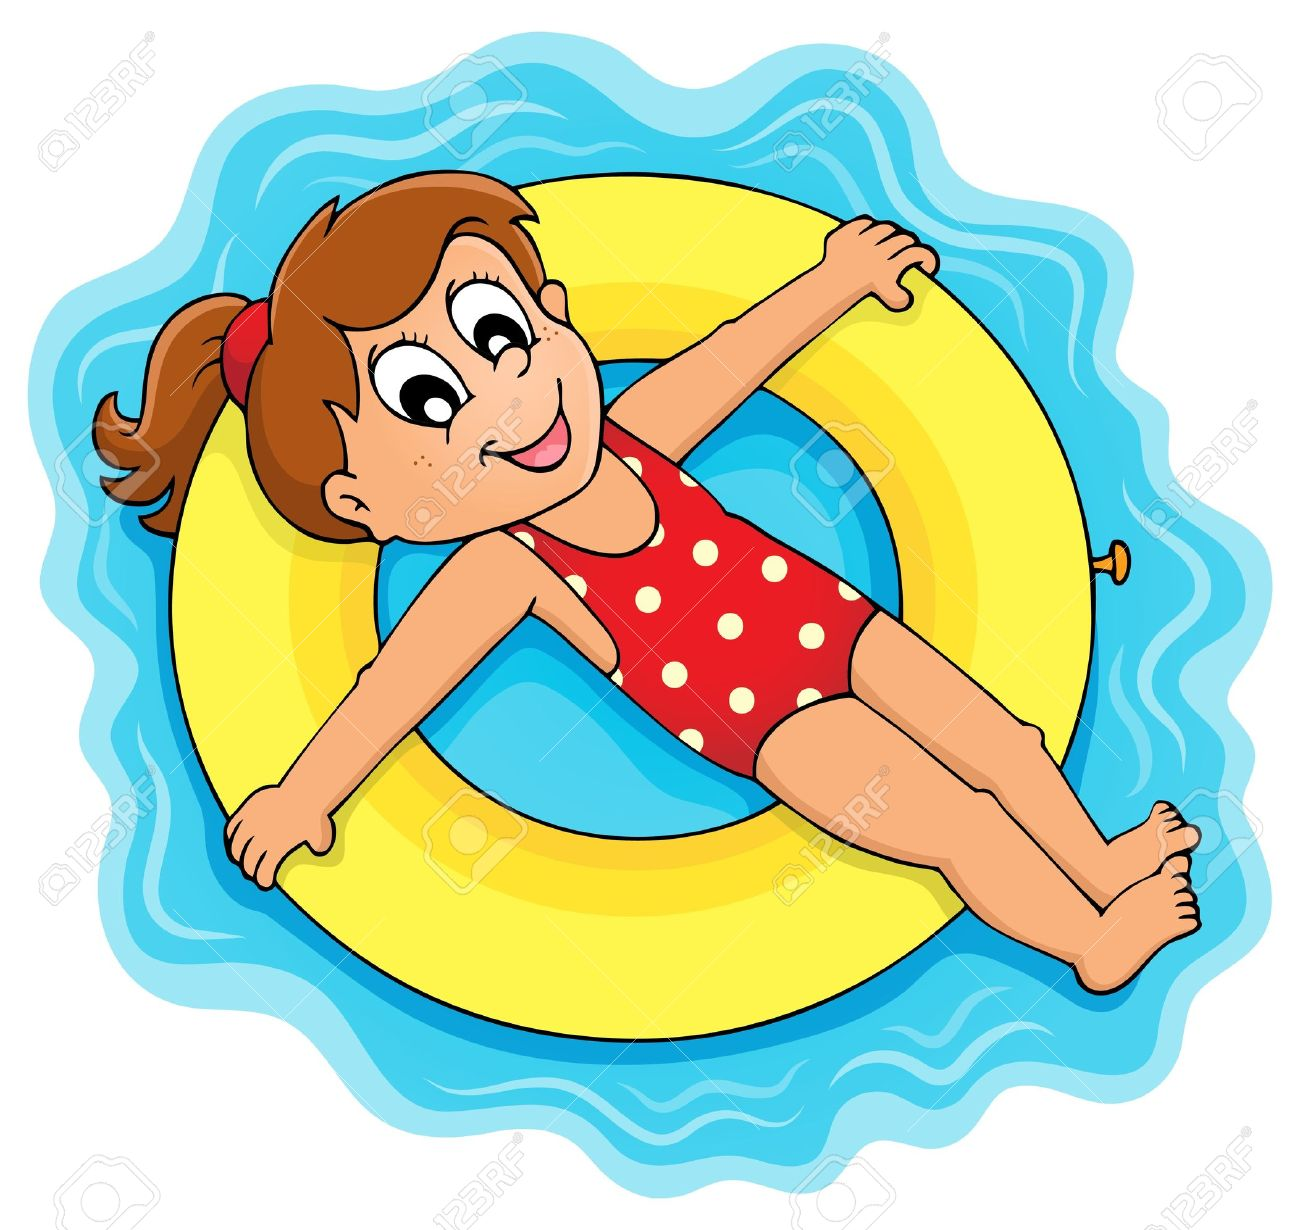 Float on water clipart.